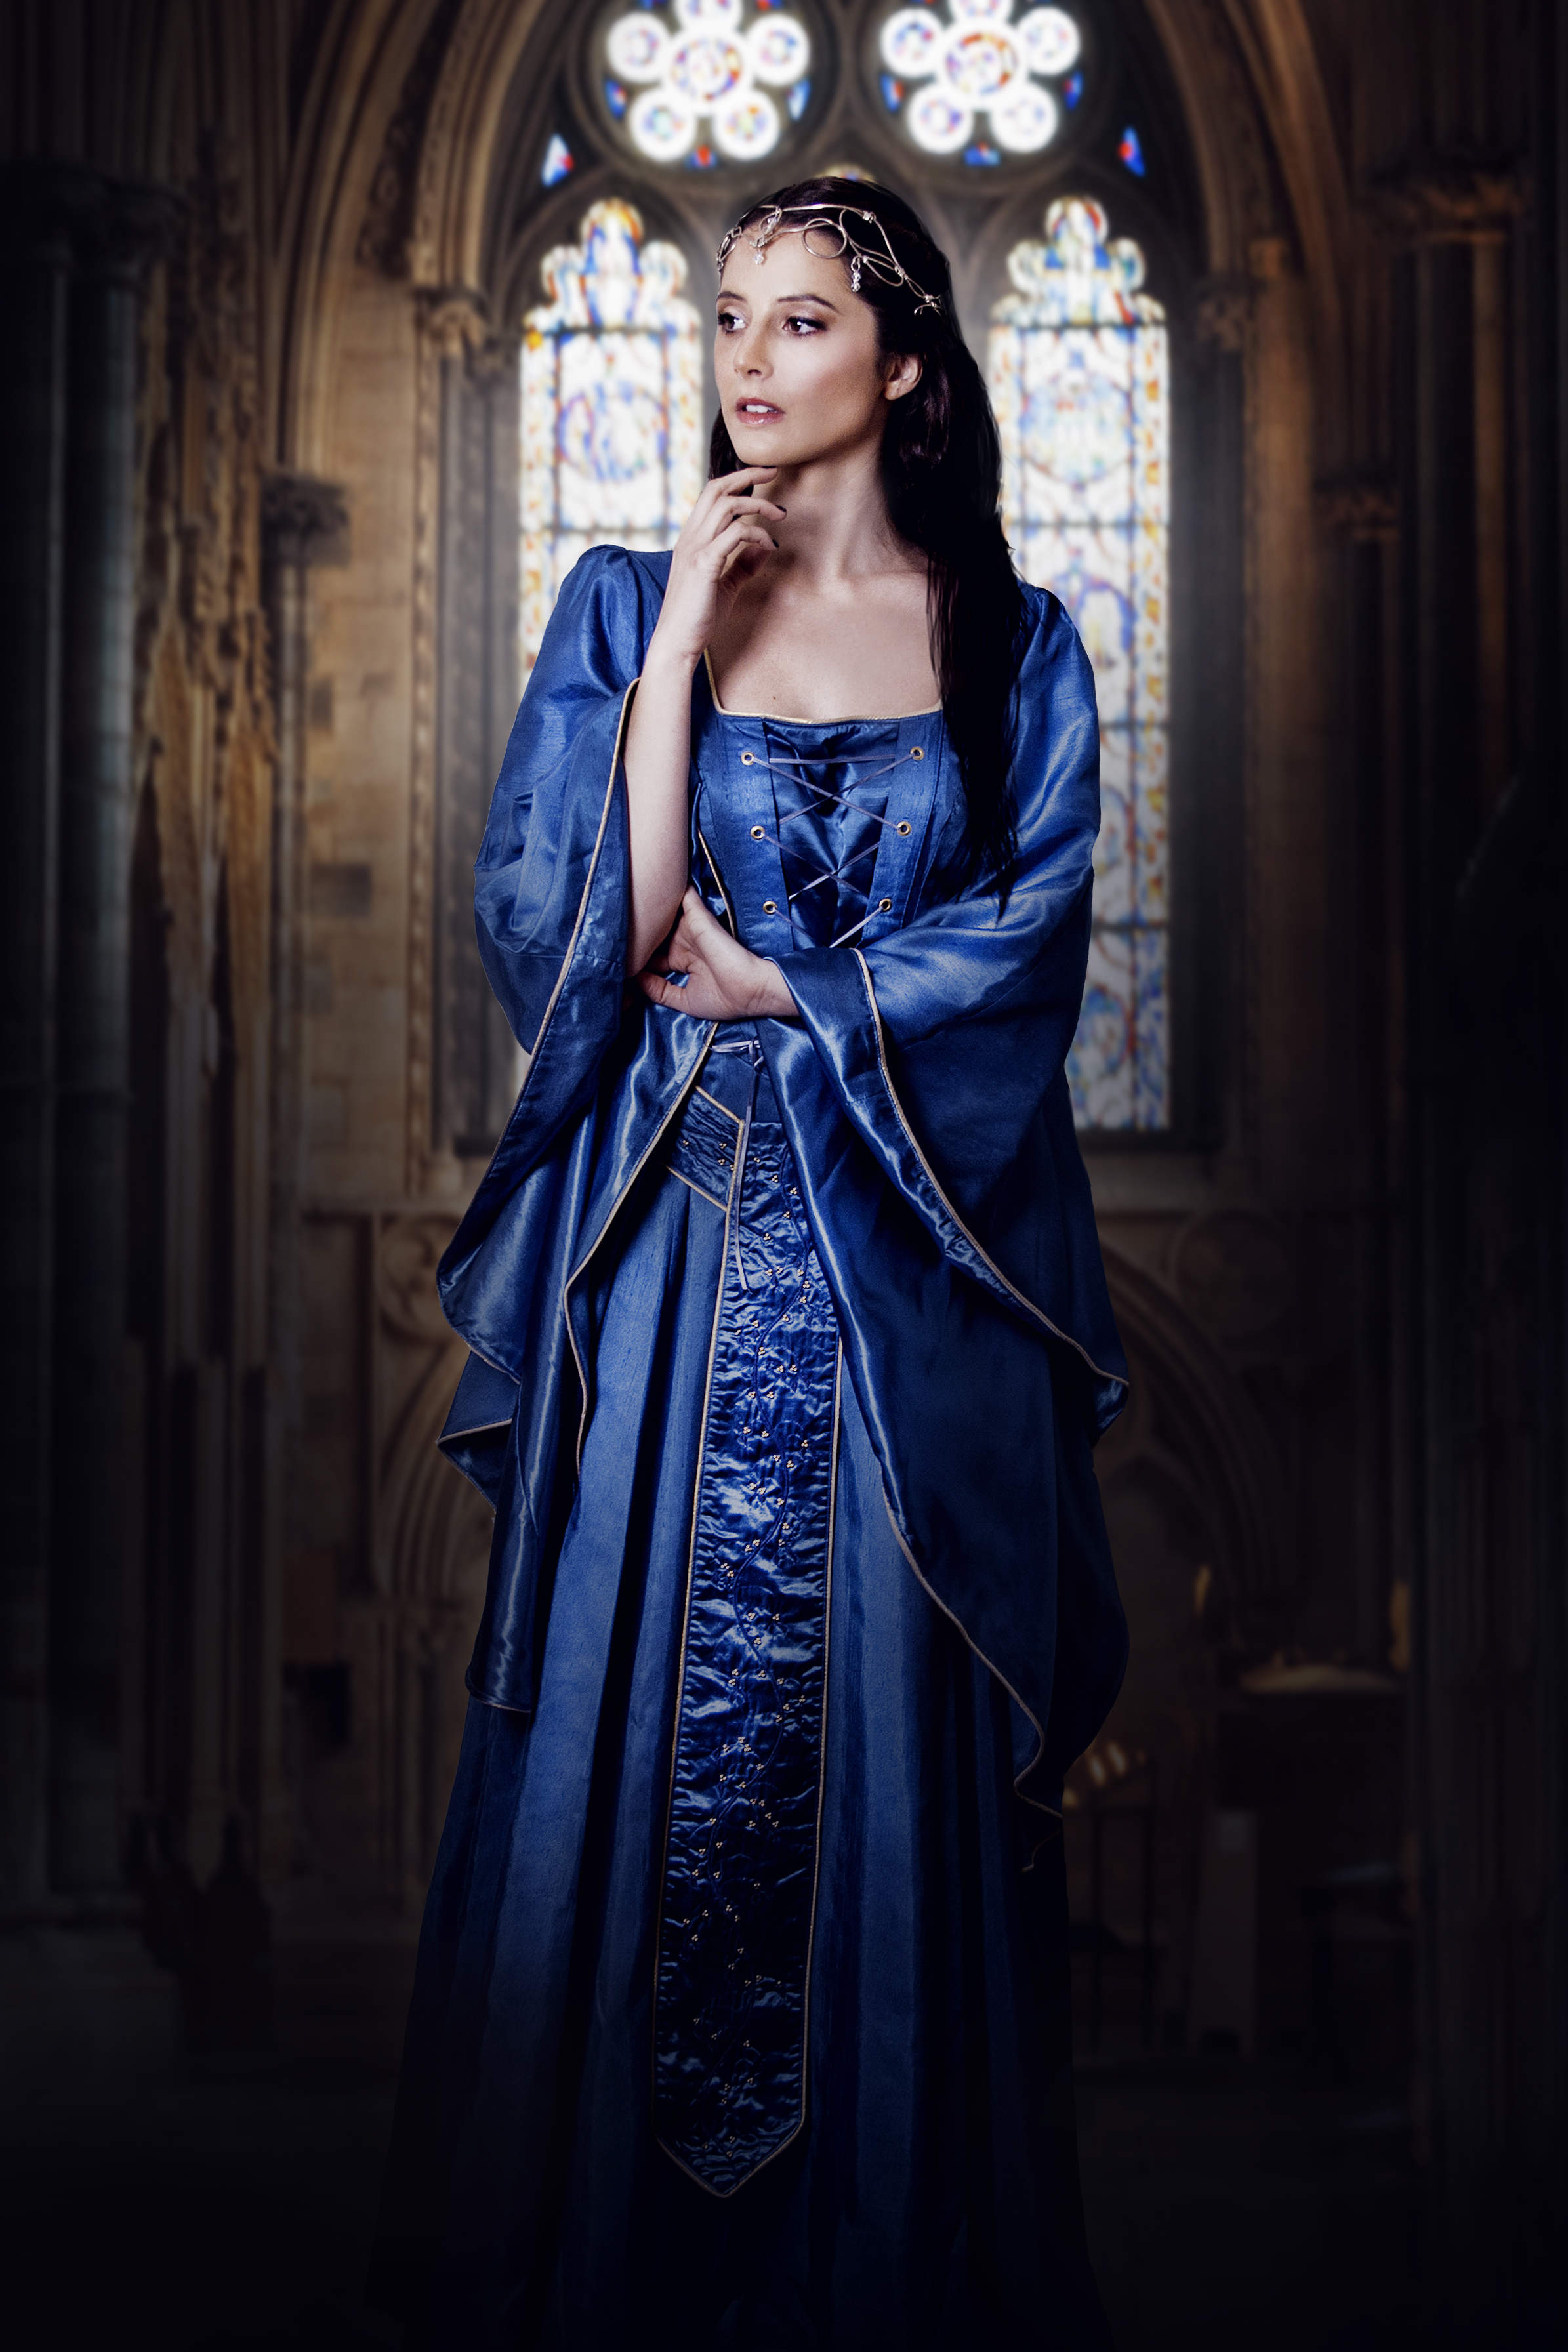 Evelyn. Blue medieval gown with batwing sleeves and lacing on the front